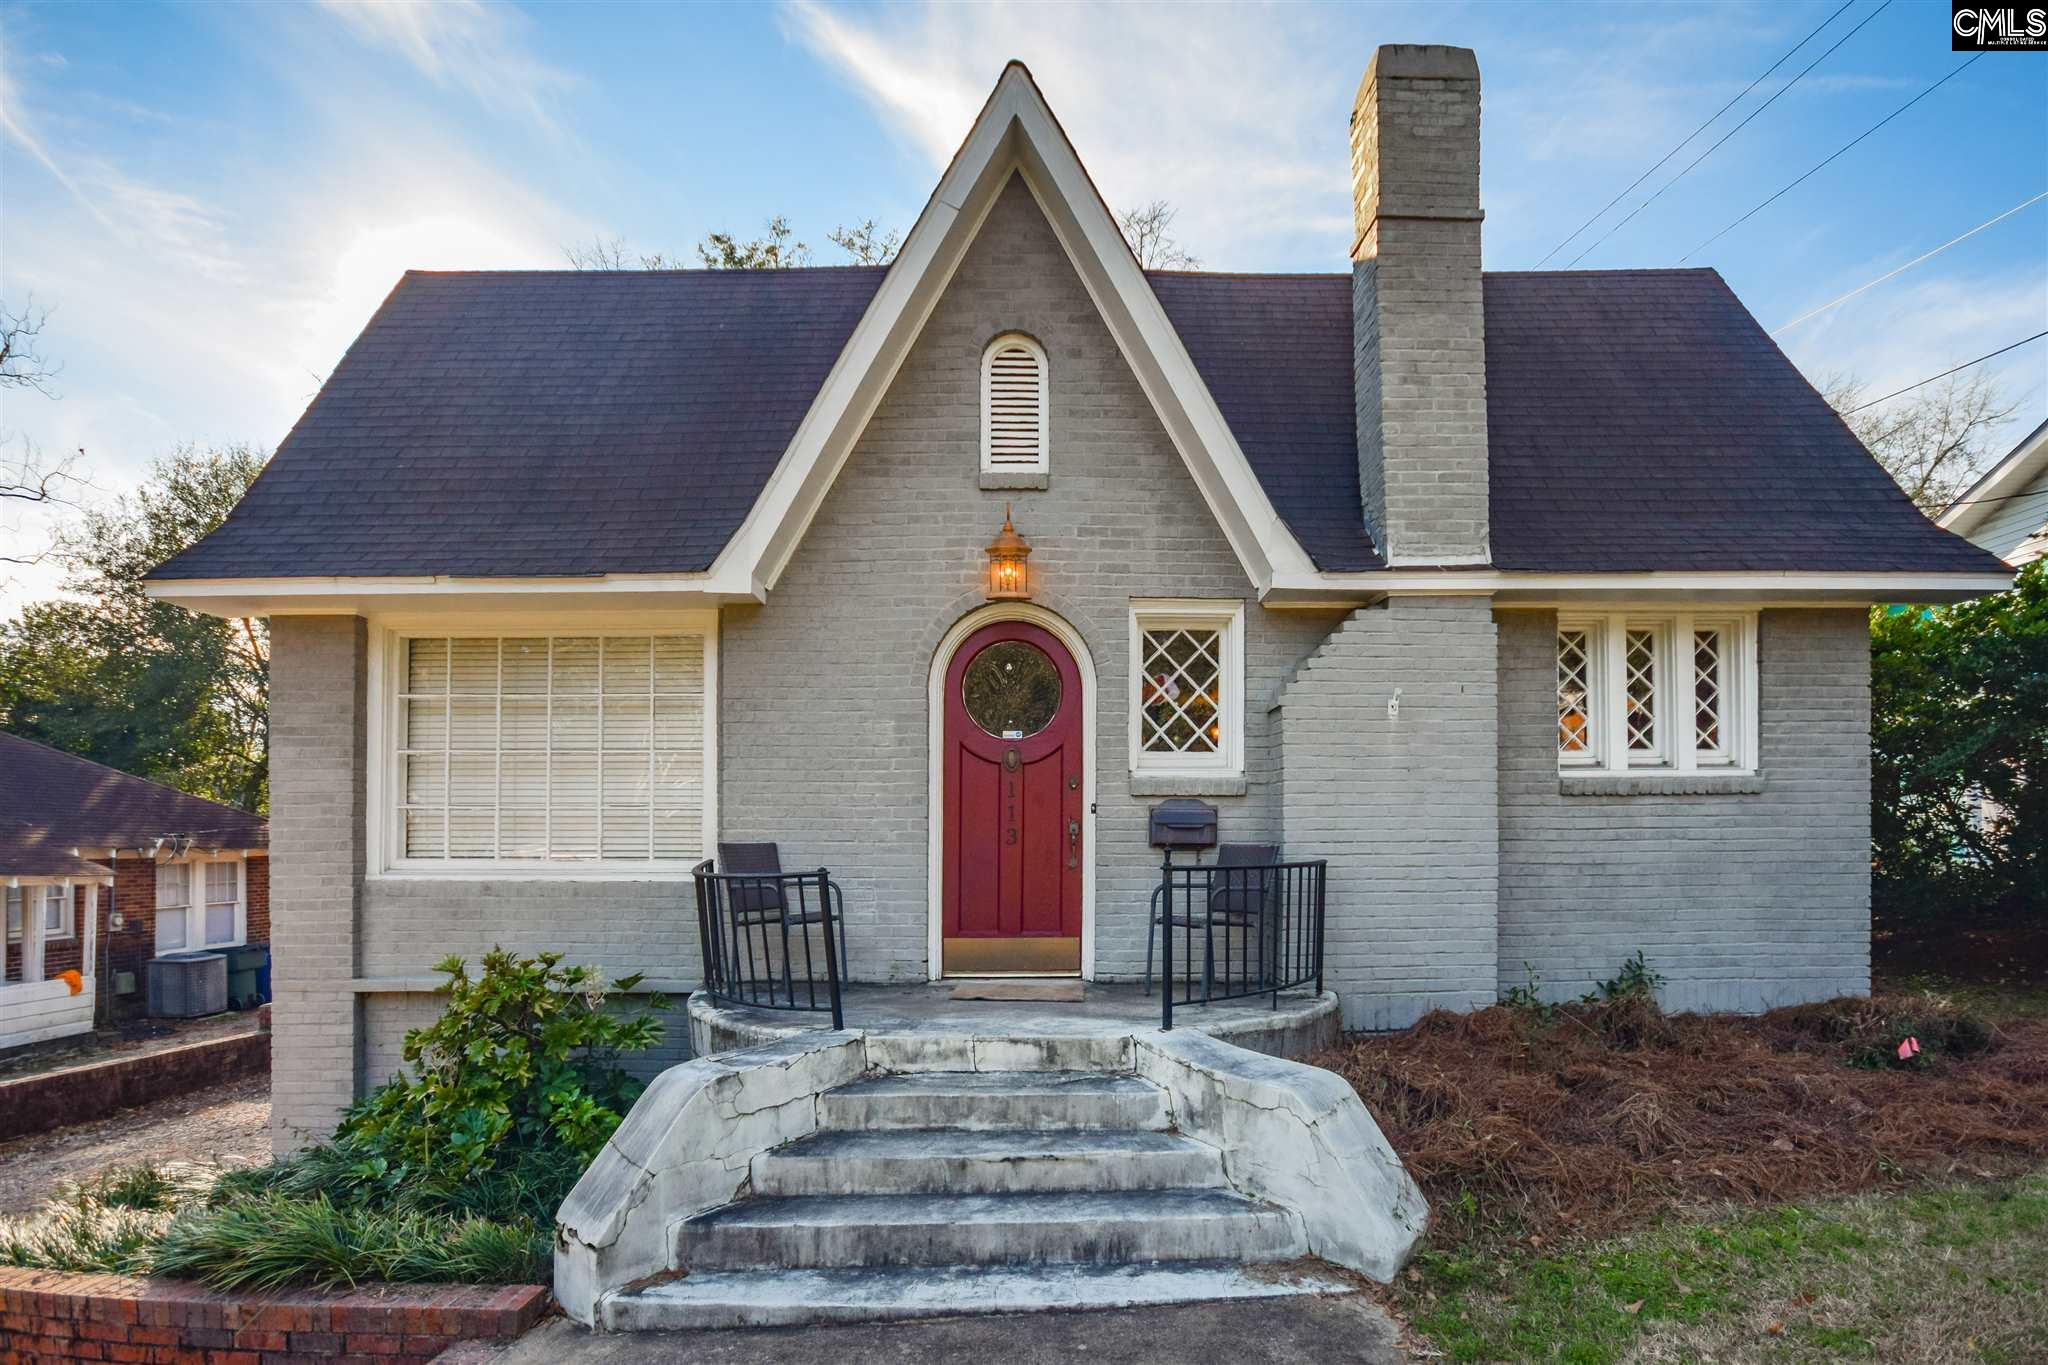 113 S Pickens Columbia, SC 29205